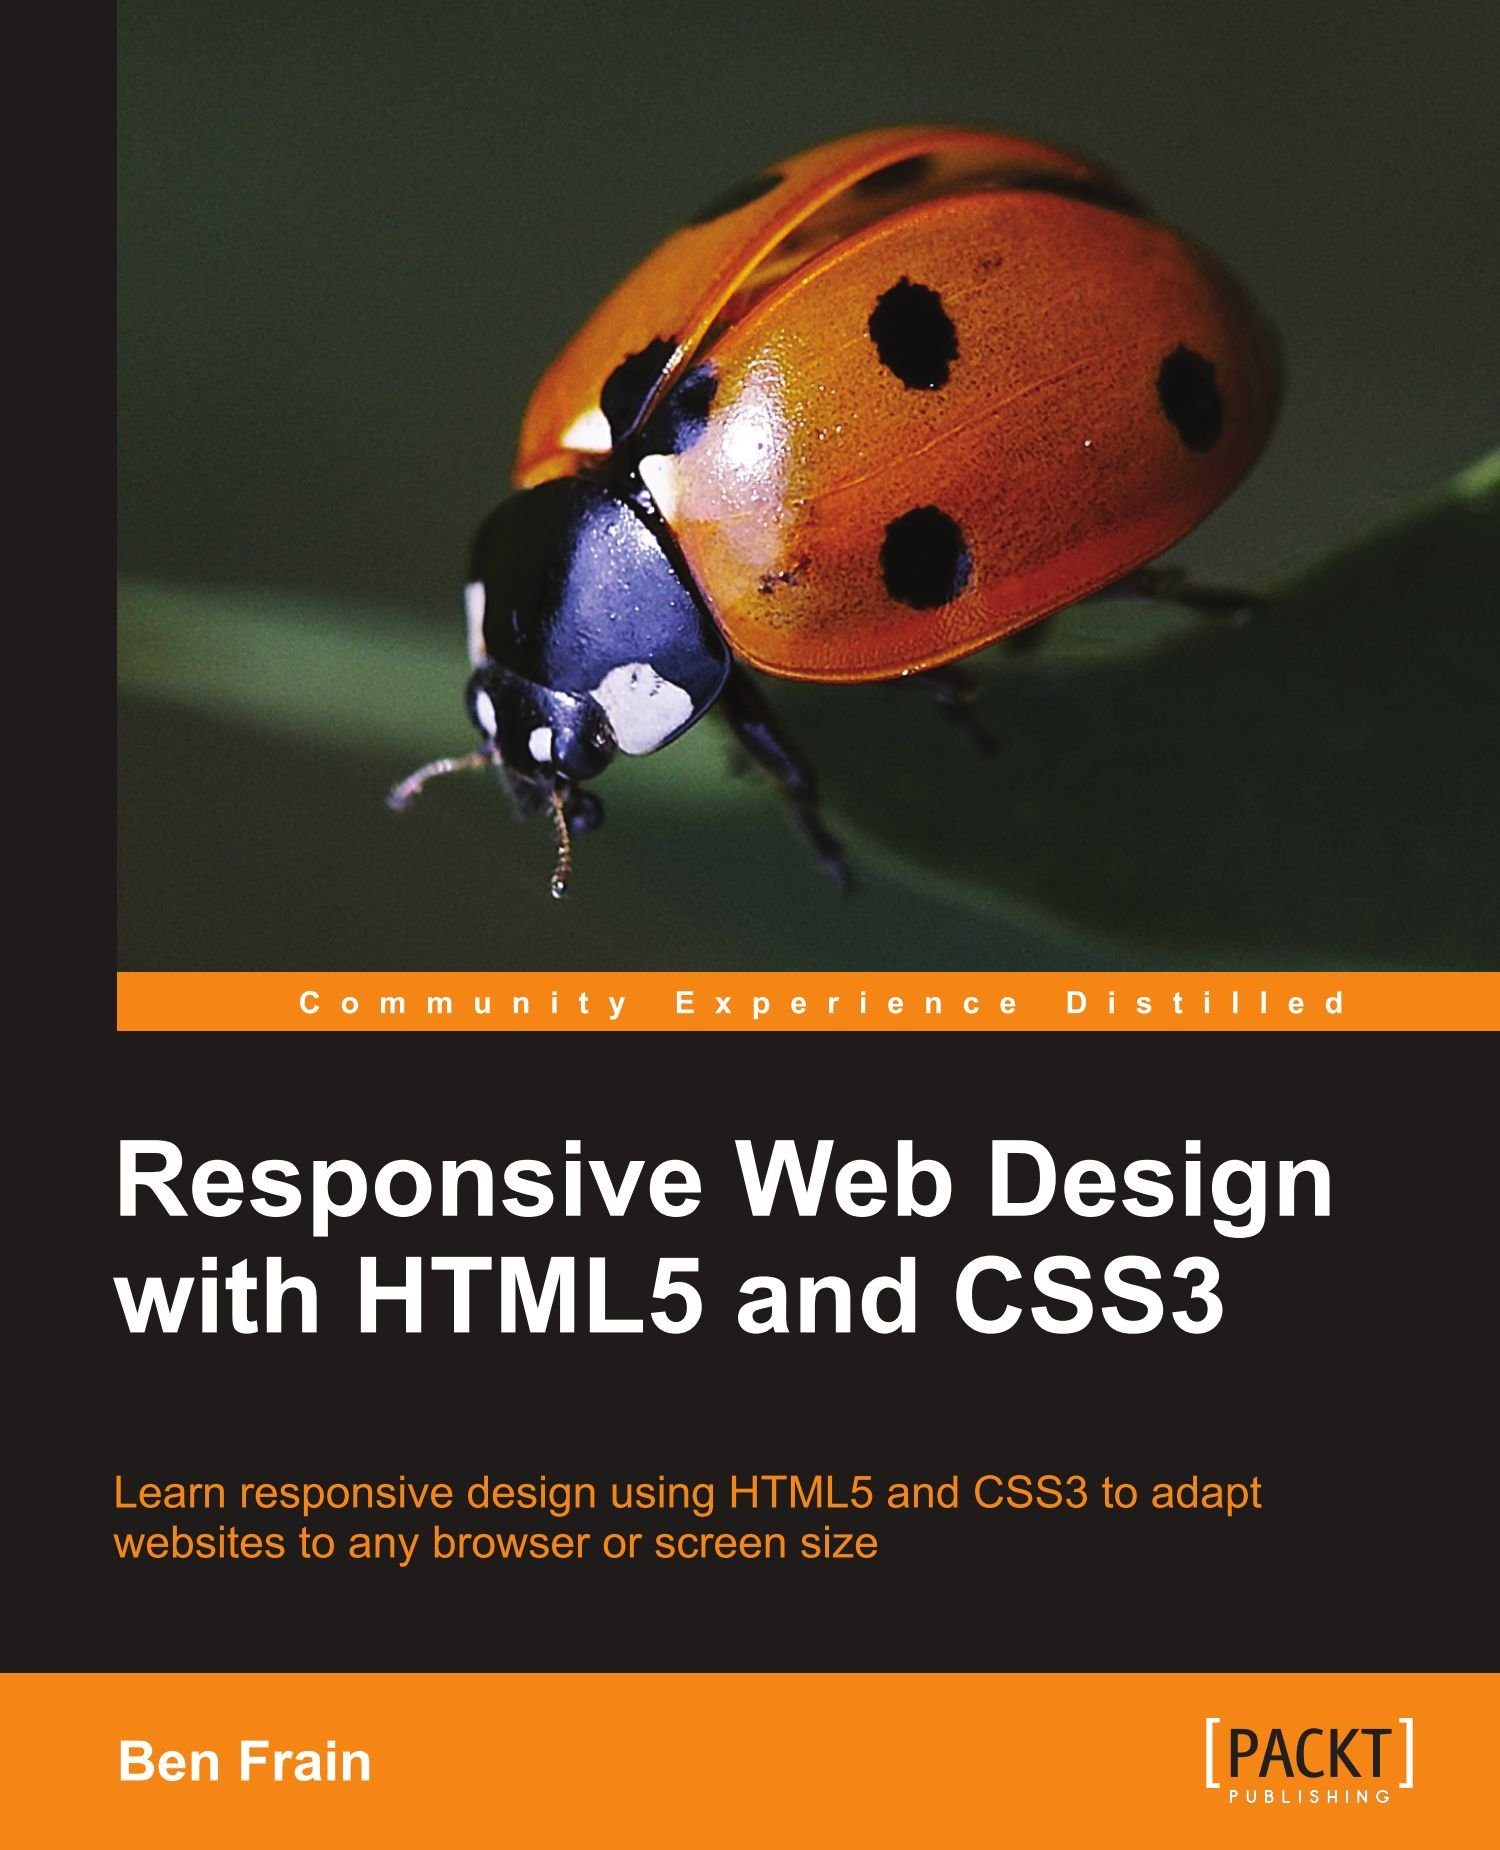 Responsive Web Design with HTML5 and CSS3: Ben Frain: 9781849693189